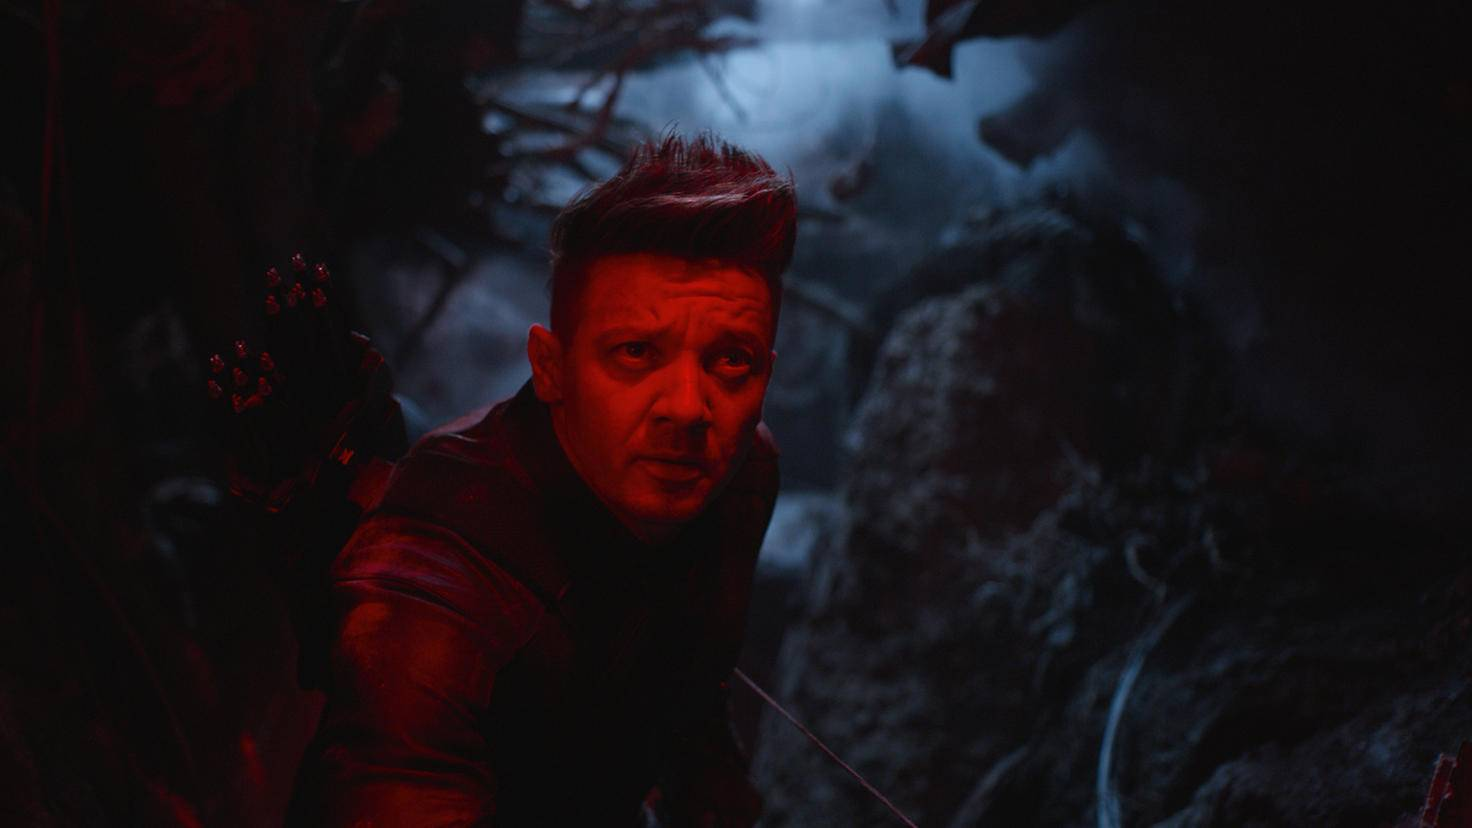 Jeremy Renner as Hawkeye Ronin in Avengers Endgame